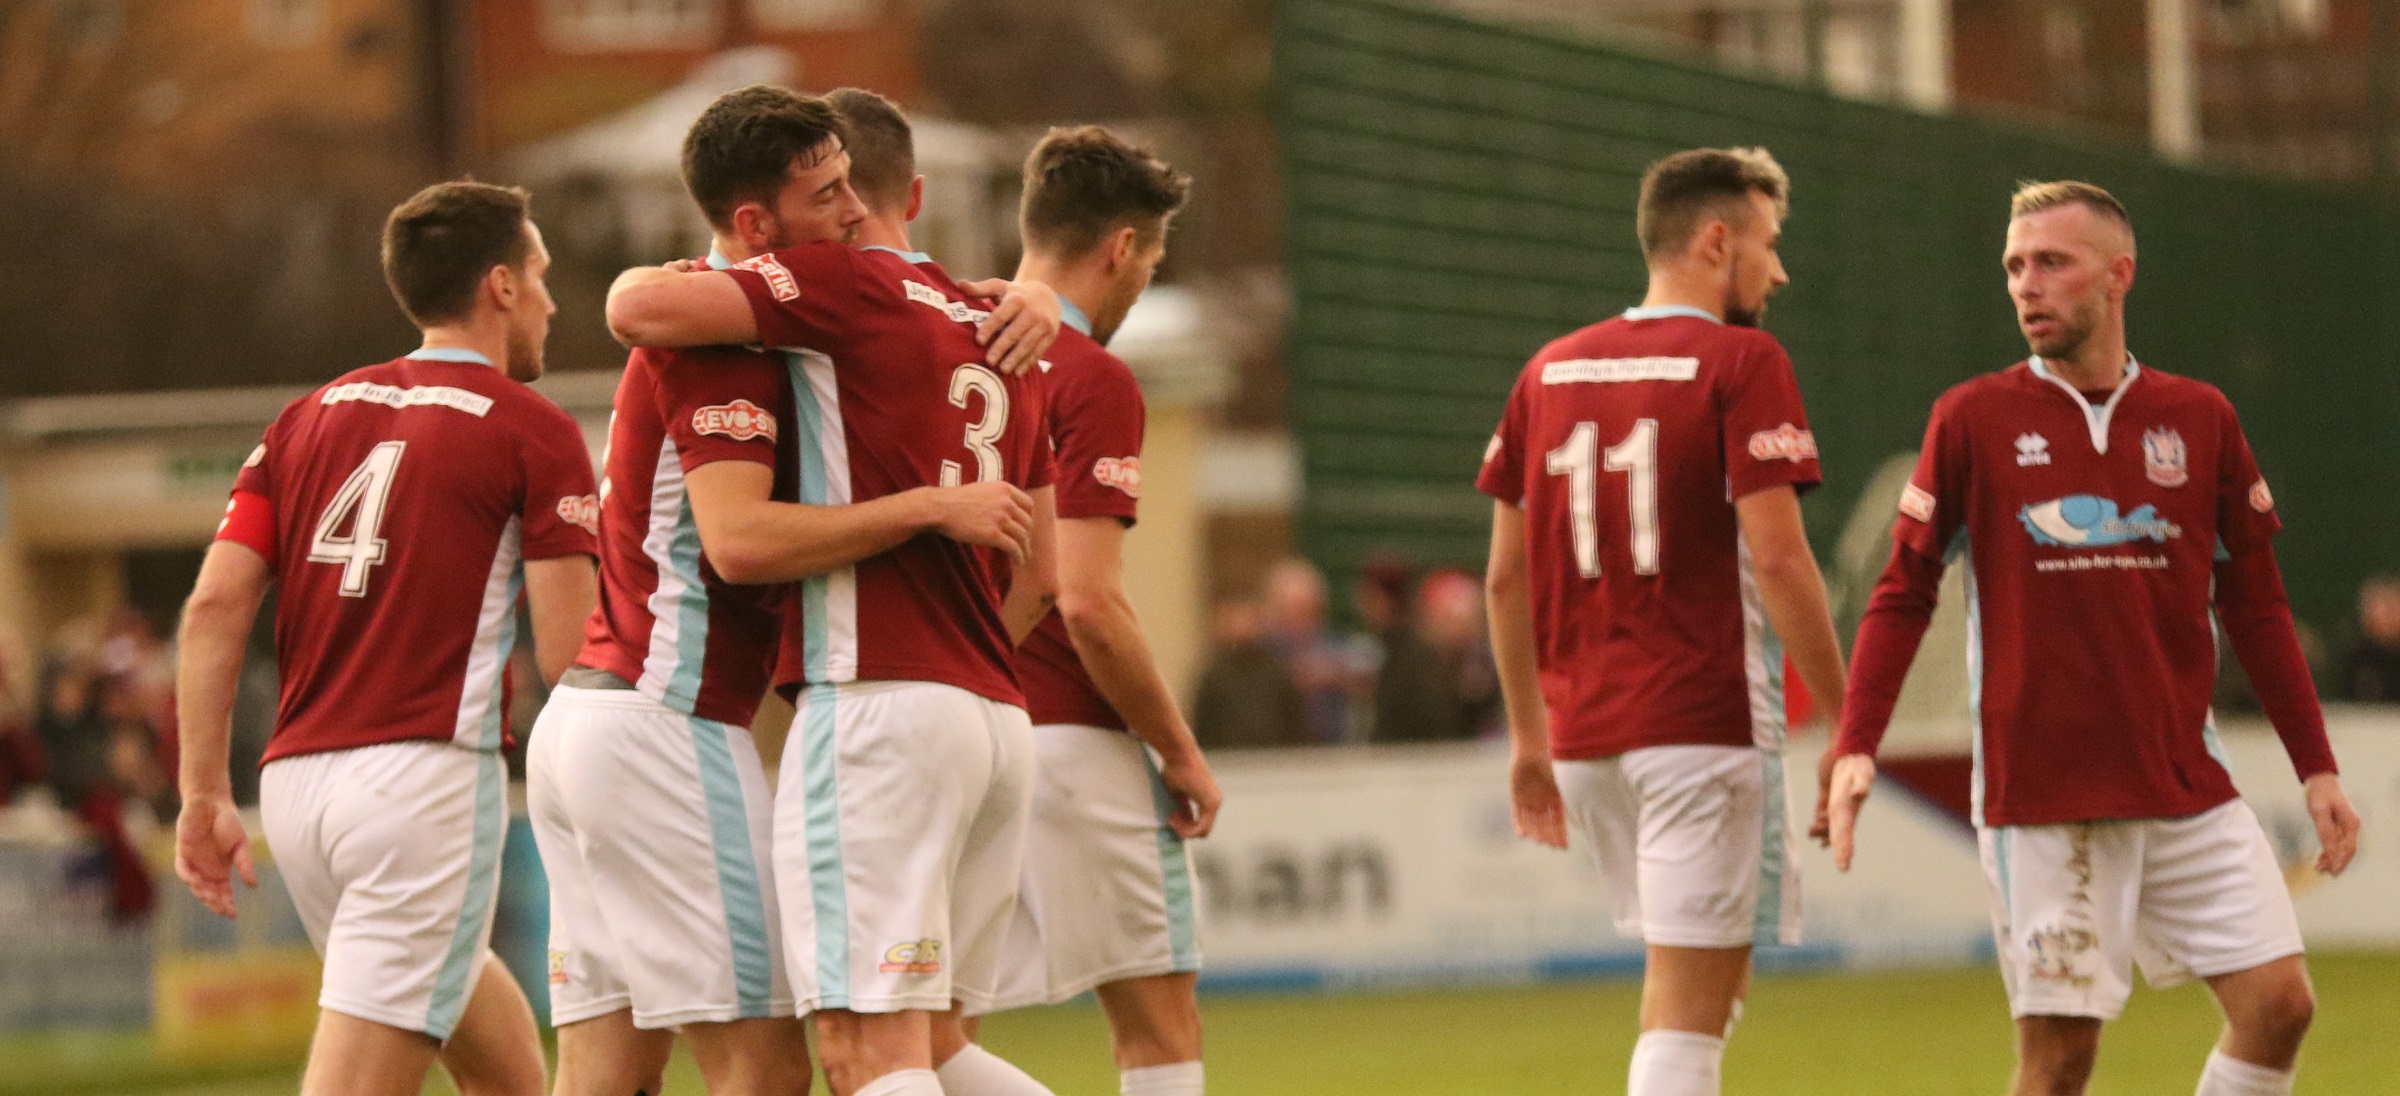 Match Preview: Bamber Bridge vs South Shields, Evo-Stik North